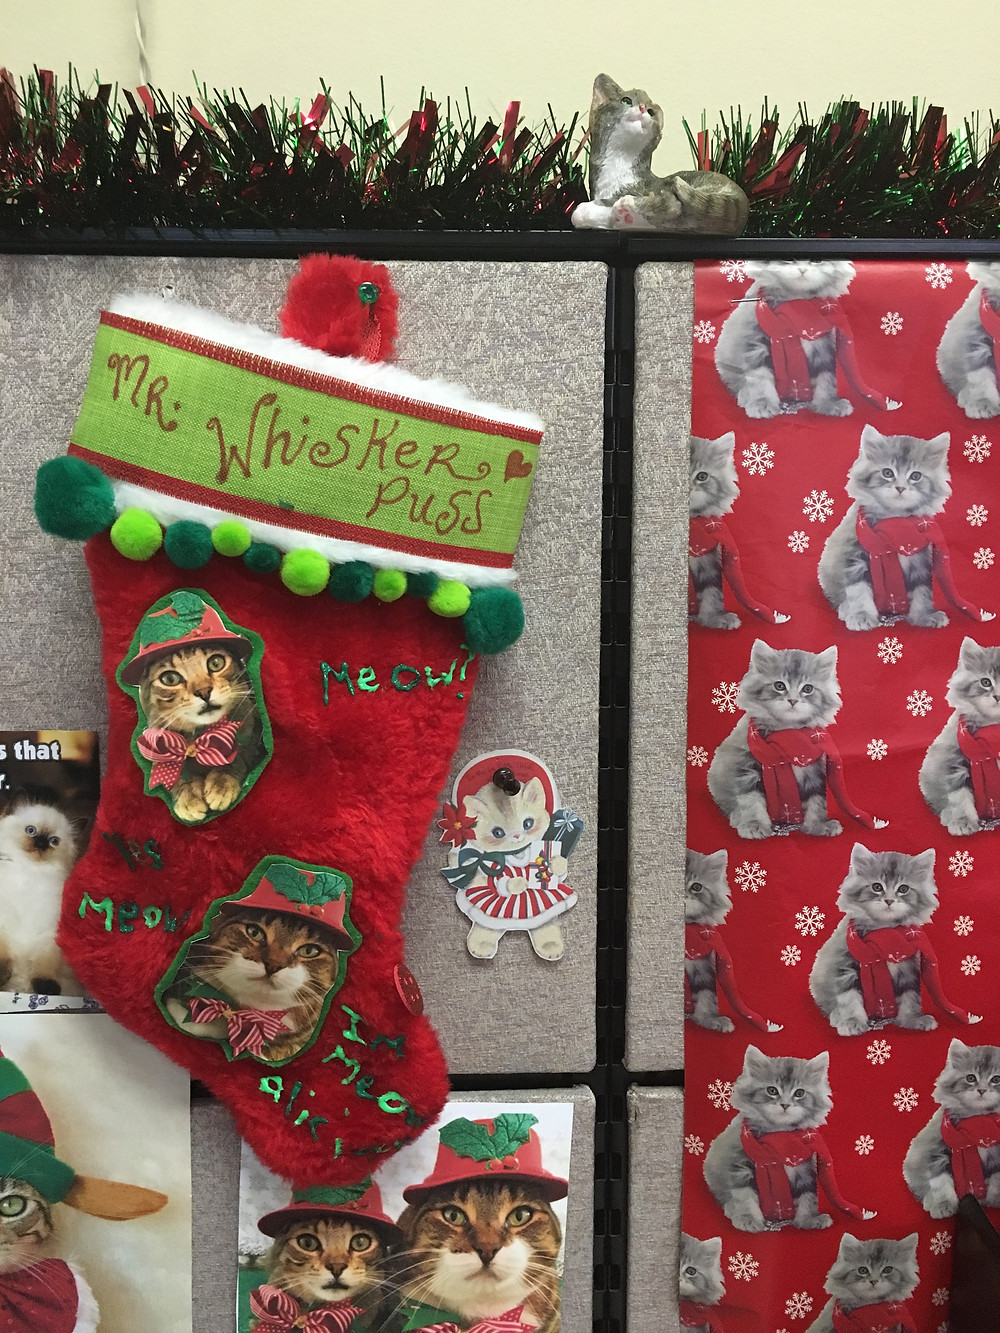 Here's the crazy cat lady's stocking